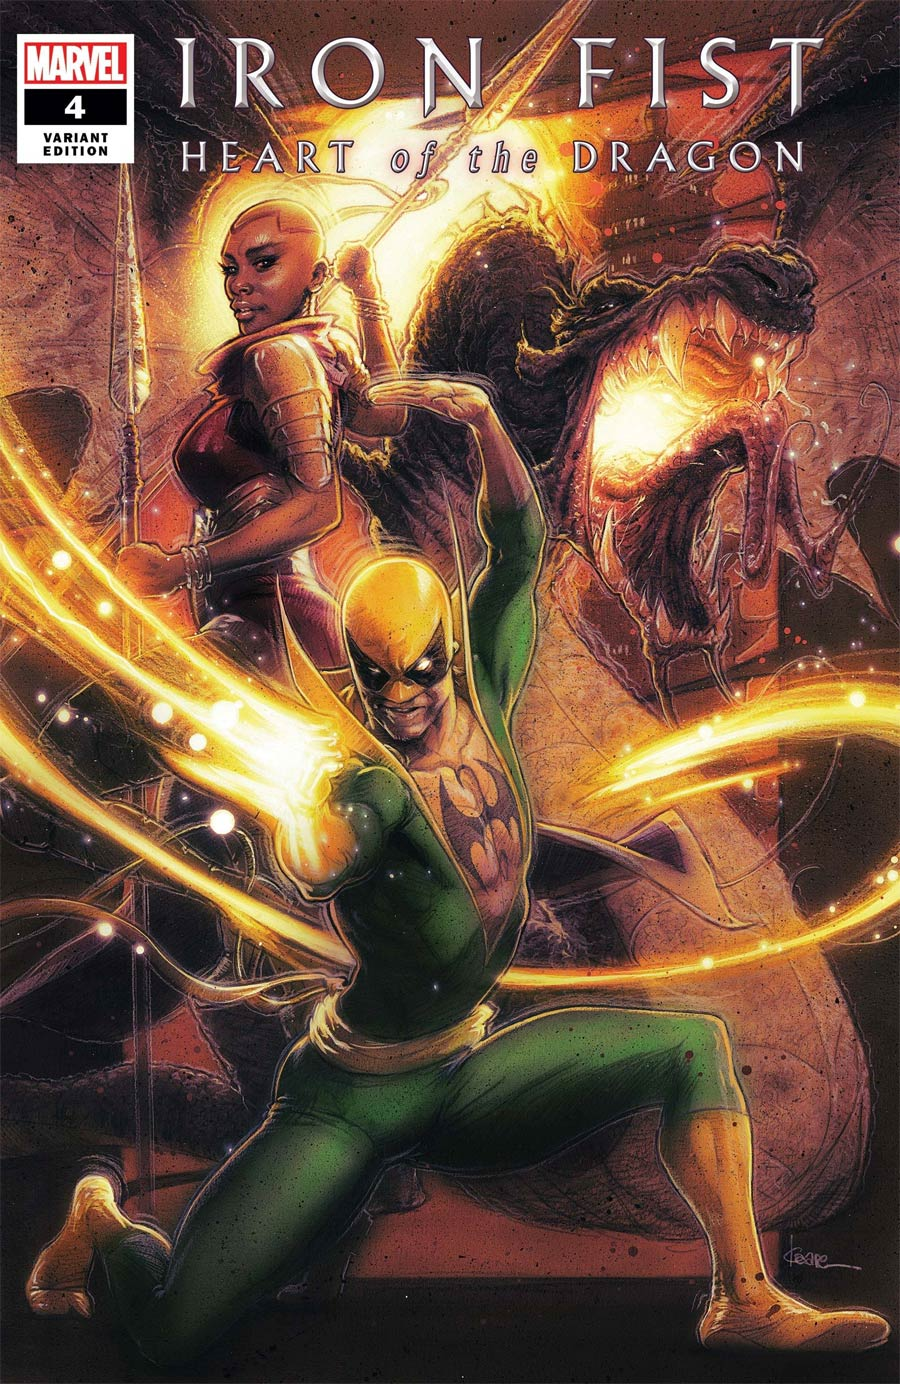 Iron Fist Heart Of The Dragon #4 Cover B Variant Kaare Andrews Cover